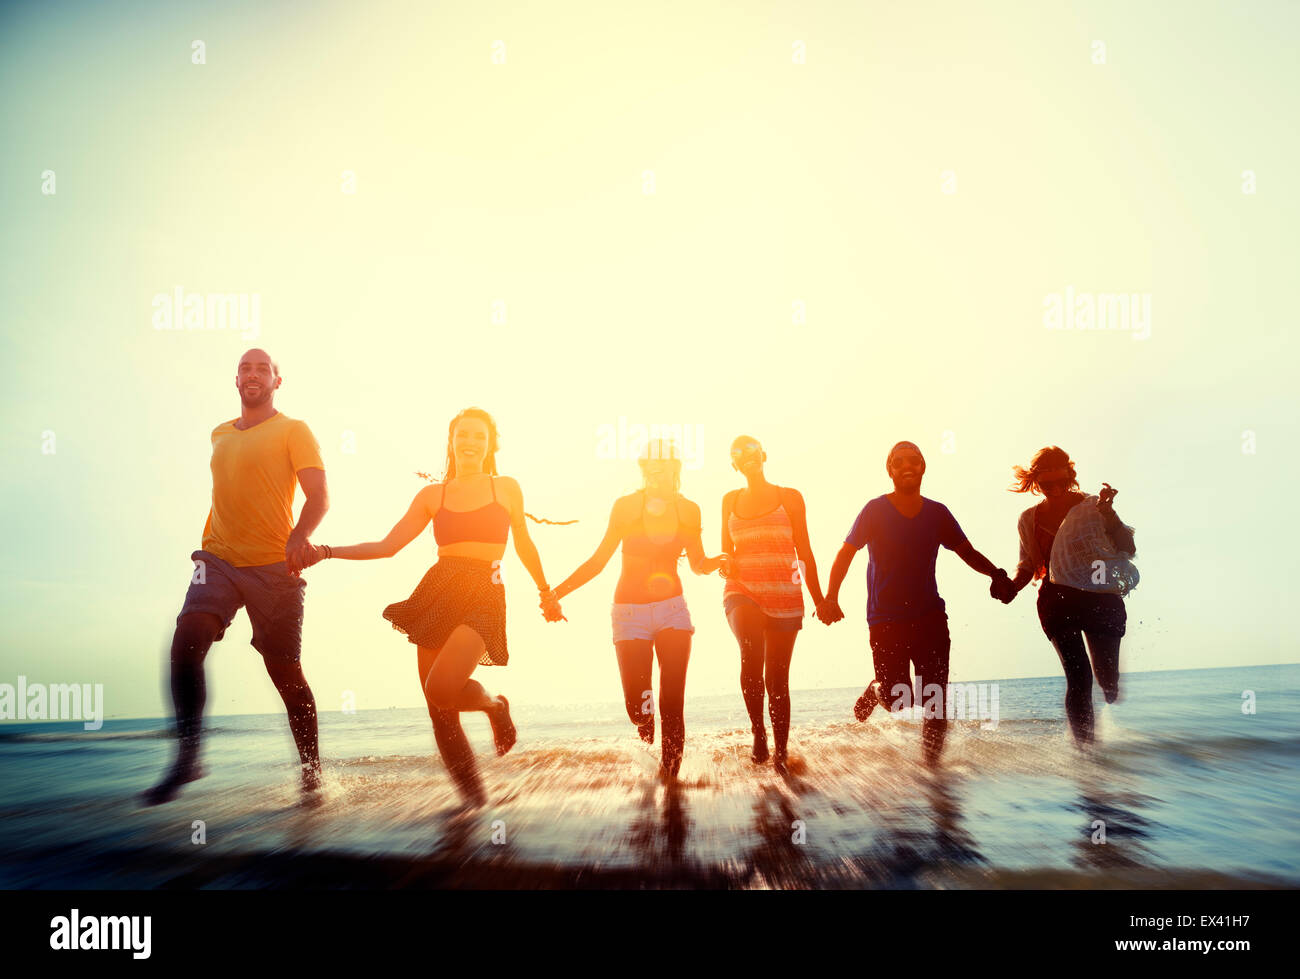 Friendship Freedom Beach Summer Holiday Concept - Stock Image